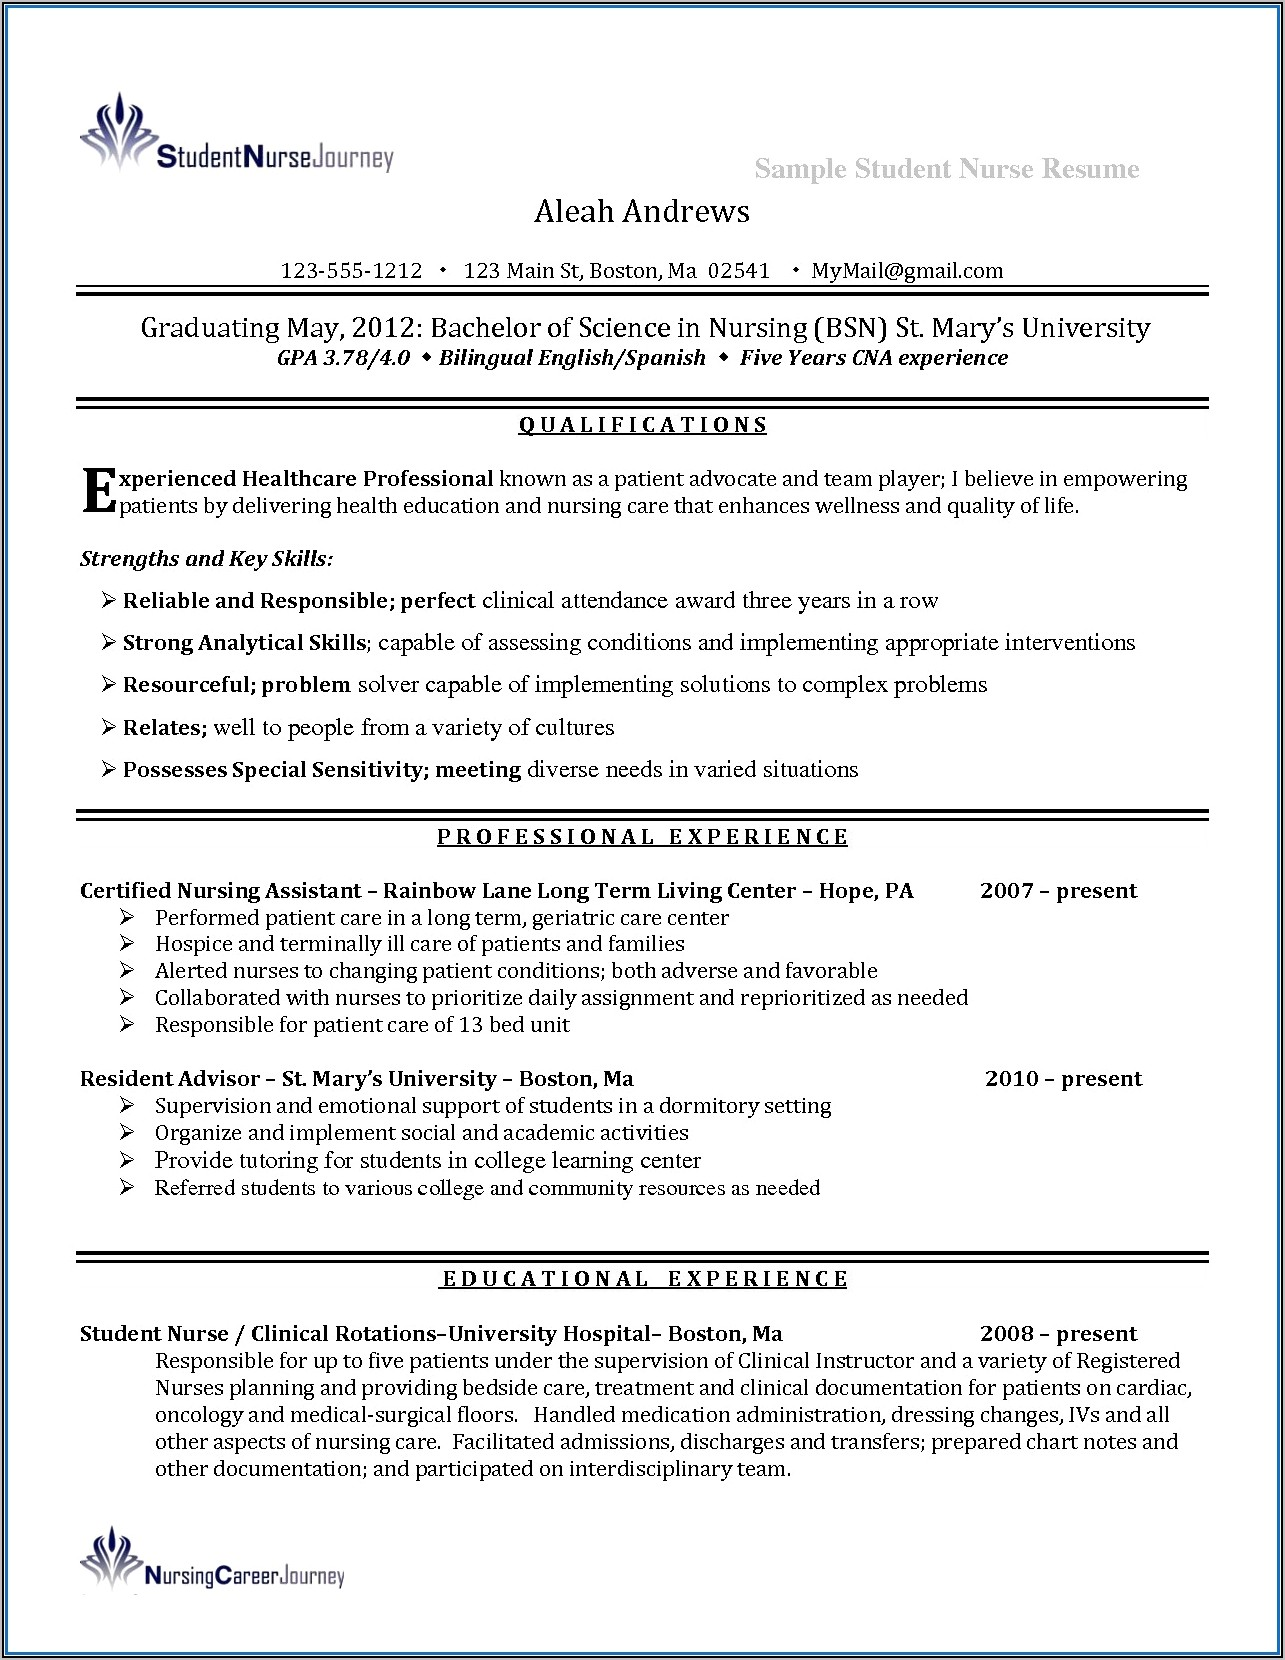 Examples Of Clinical Nurse Practitioner Resume